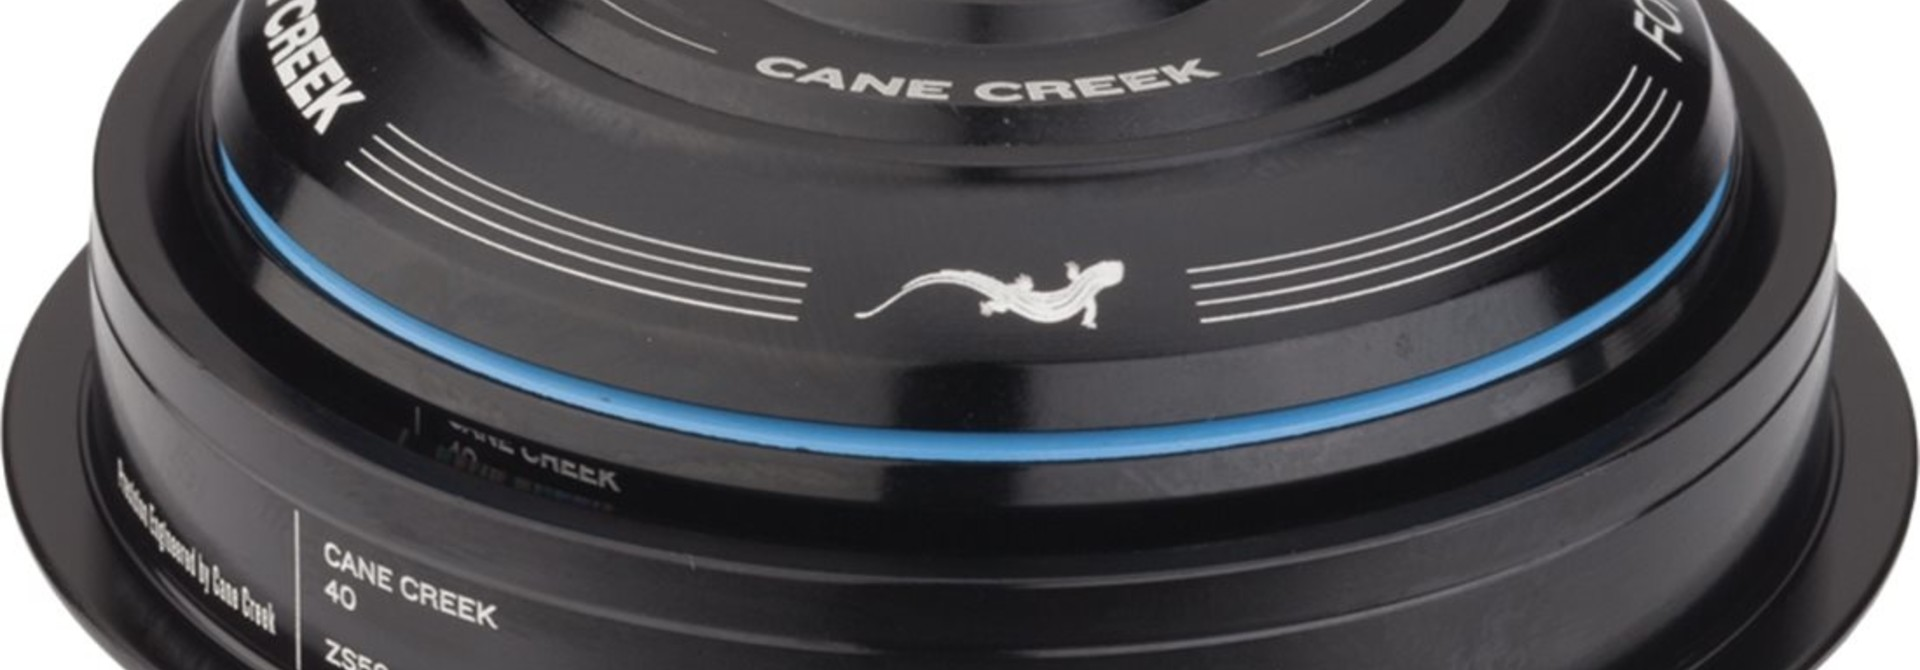 Cane Creek 40 Series Complete Headset